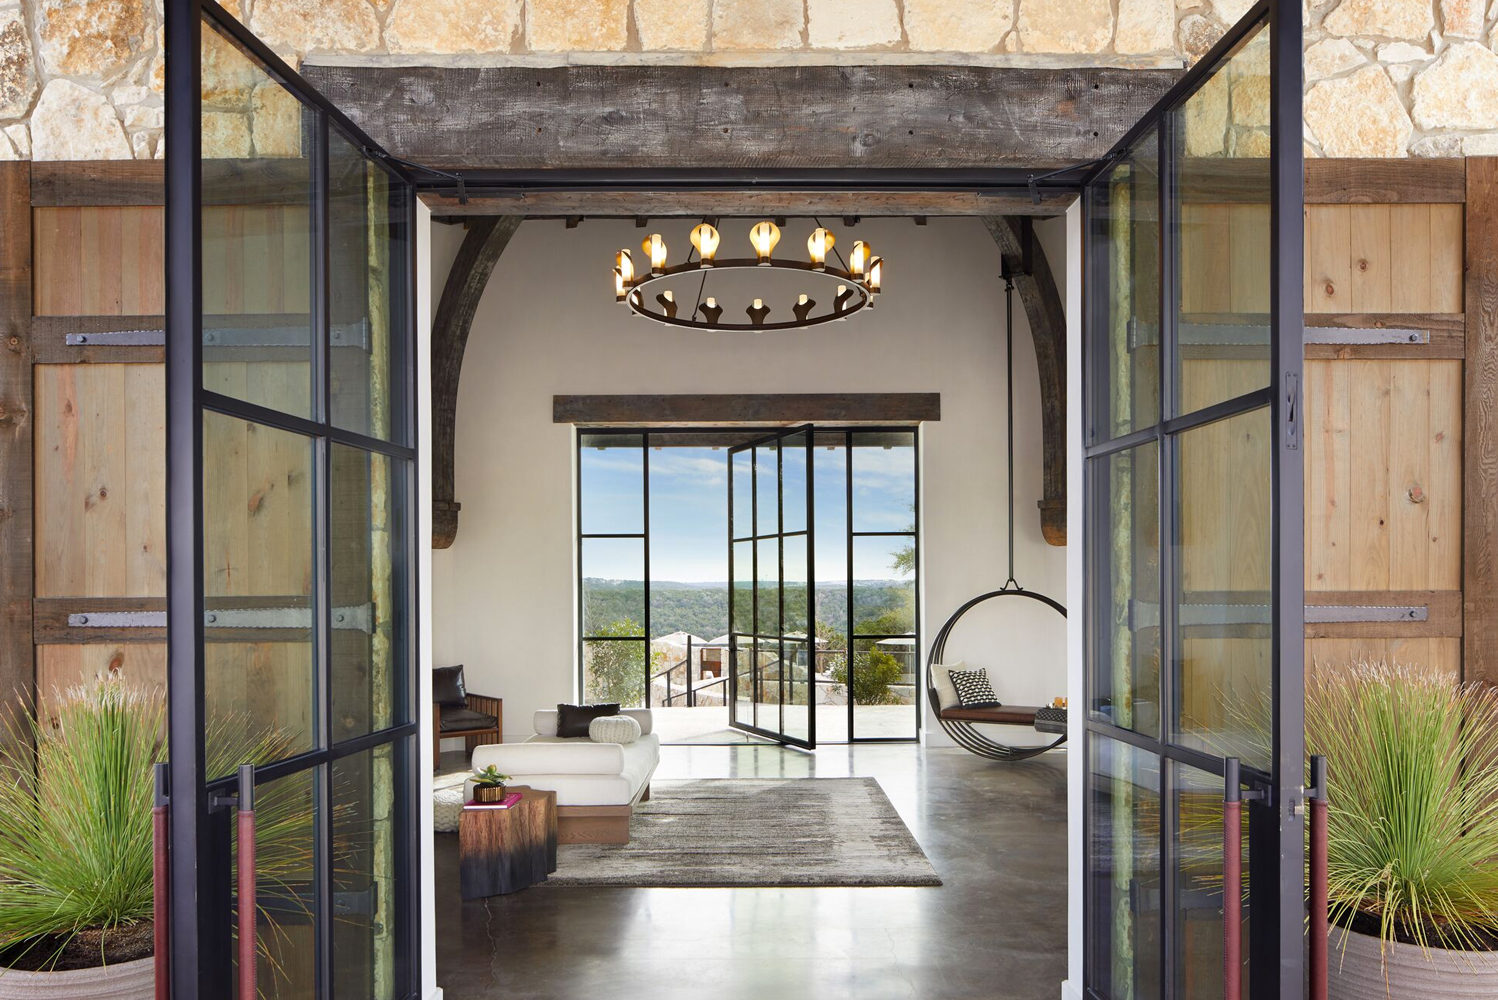 Hyatt brings its Miraval spa and wellness brand to Austin, Texas with the opening of Miraval Austin.